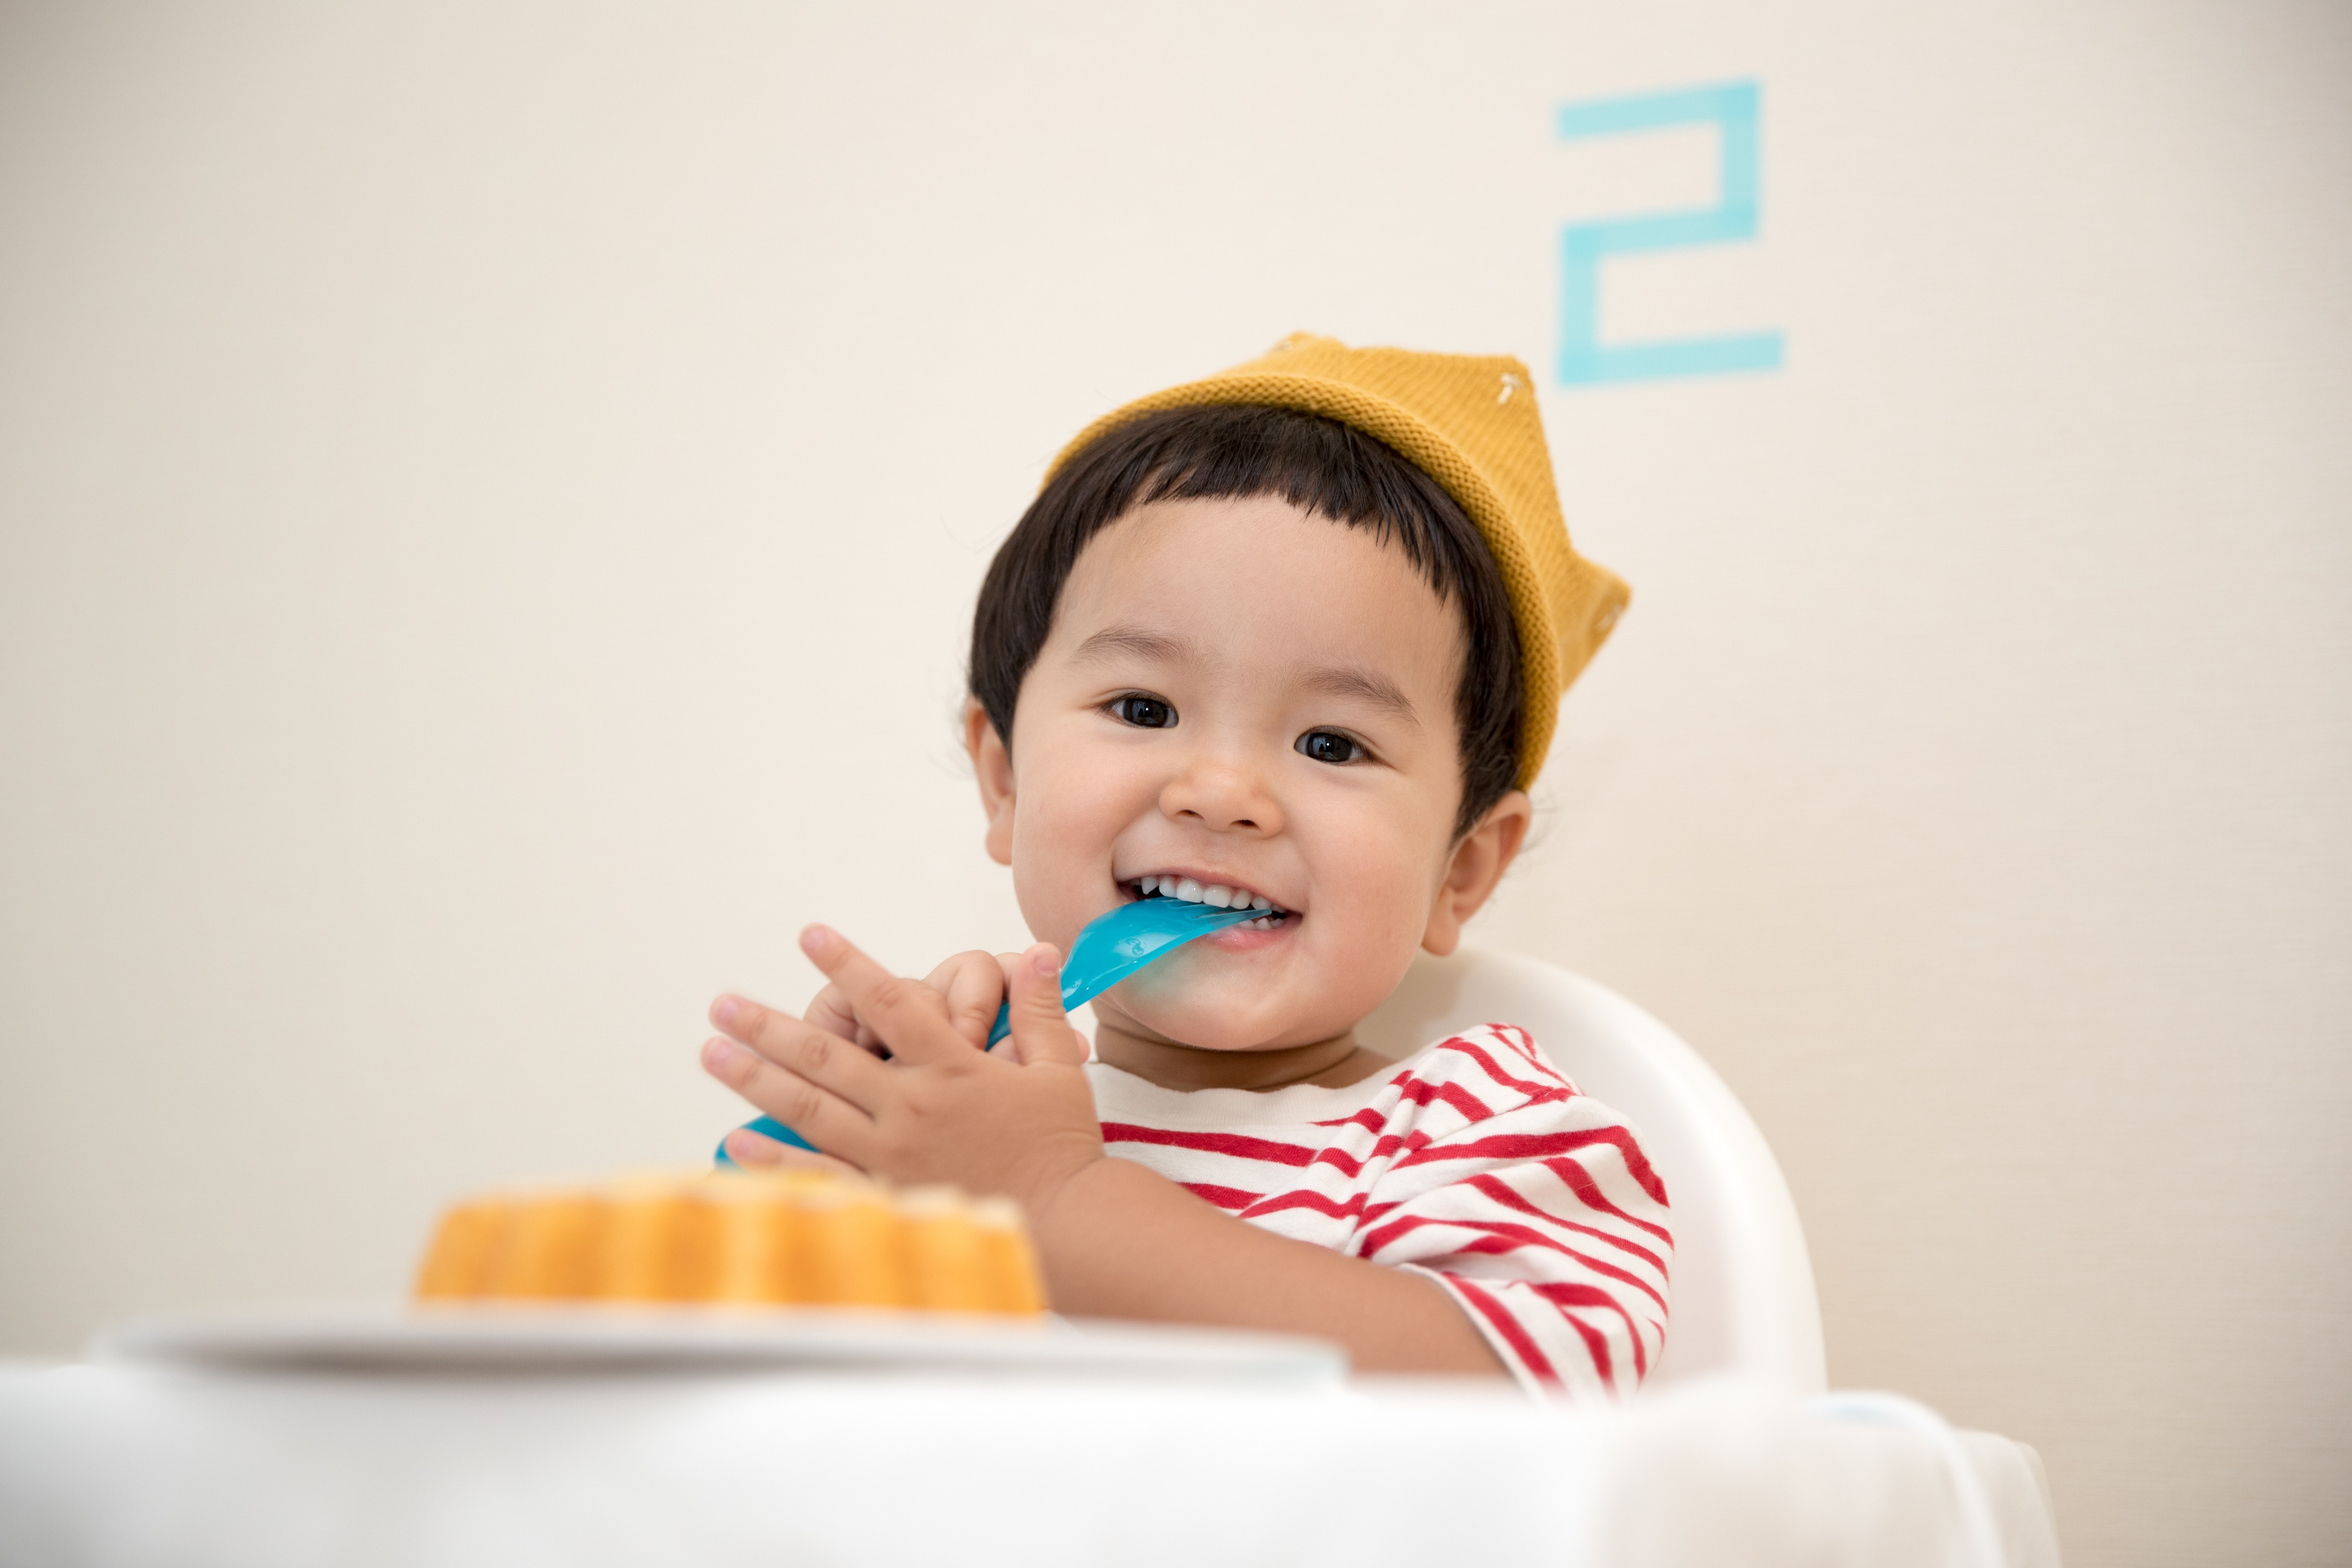 A little boy at his birthday party eating cake